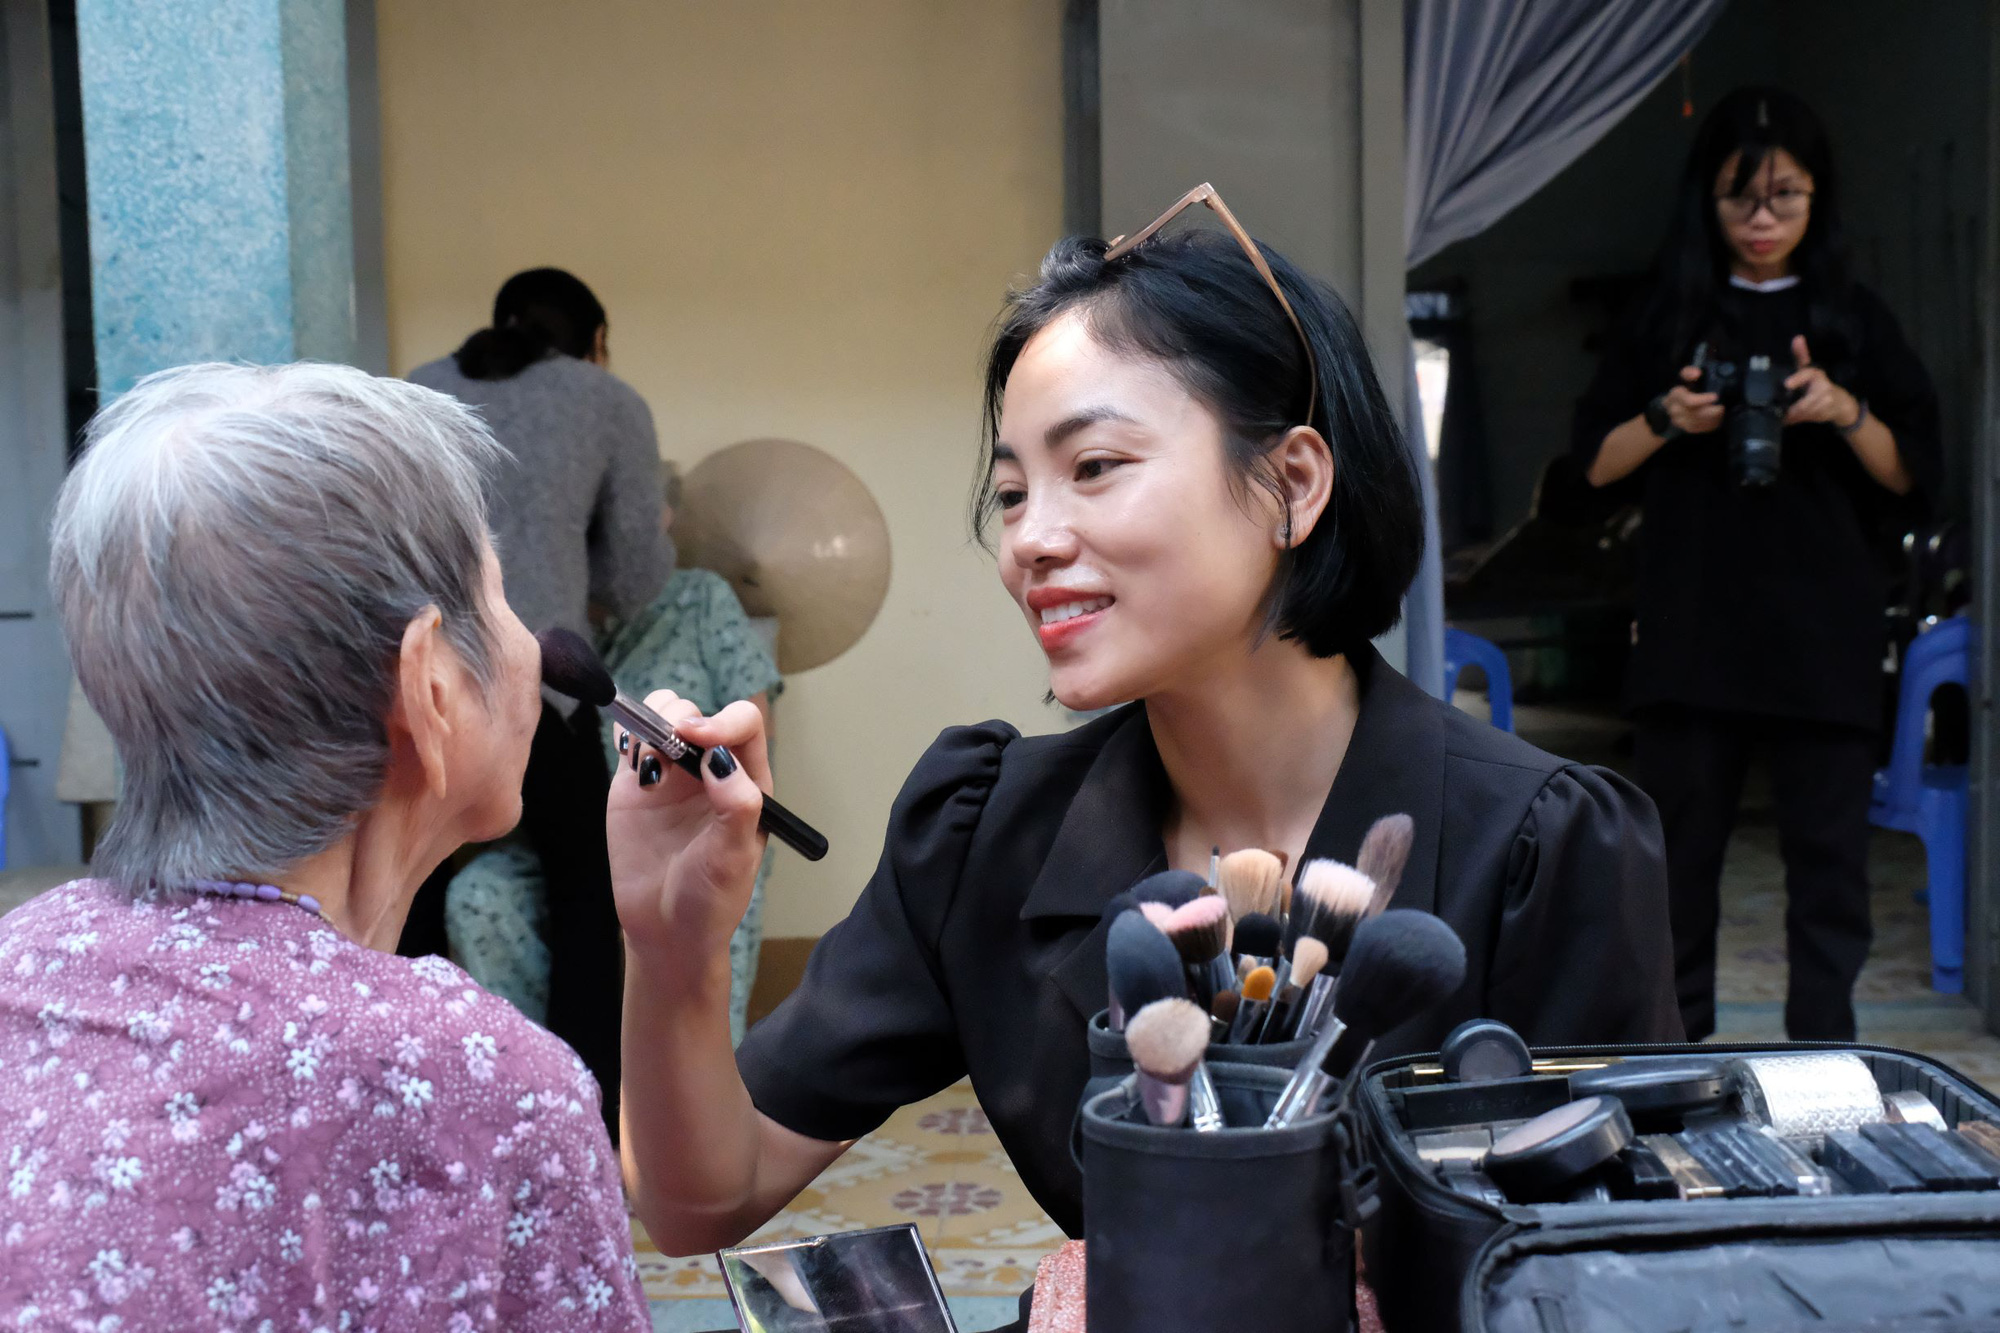 Van Thi puts on makeup for an elderly woman at Thien An social protection center in Ho Chi Minh City, January 16, 2021. Photo: Vu Thuy / Tuoi Tre